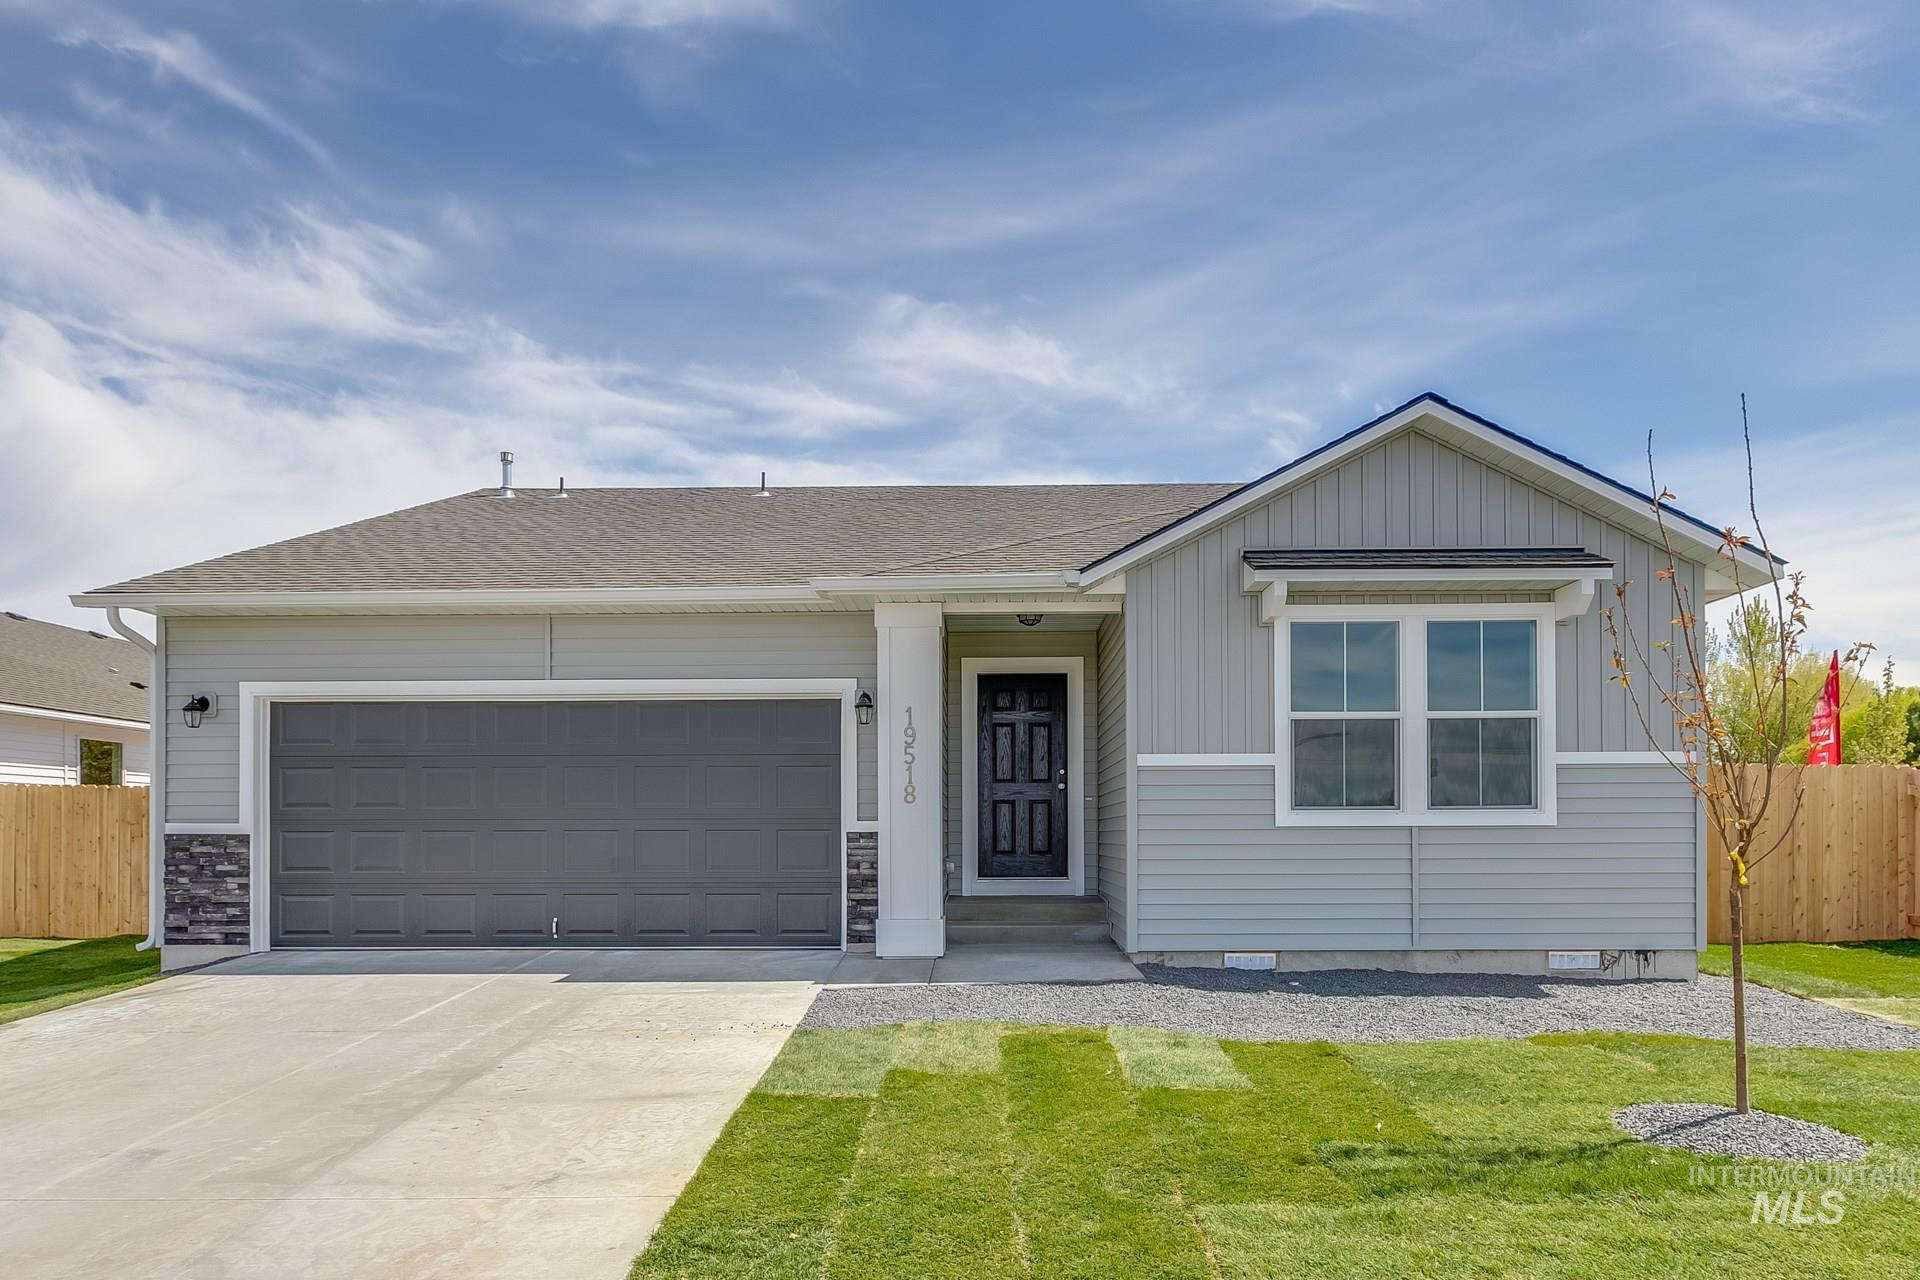 11589 Foreland St Property Photo - Caldwell, ID real estate listing